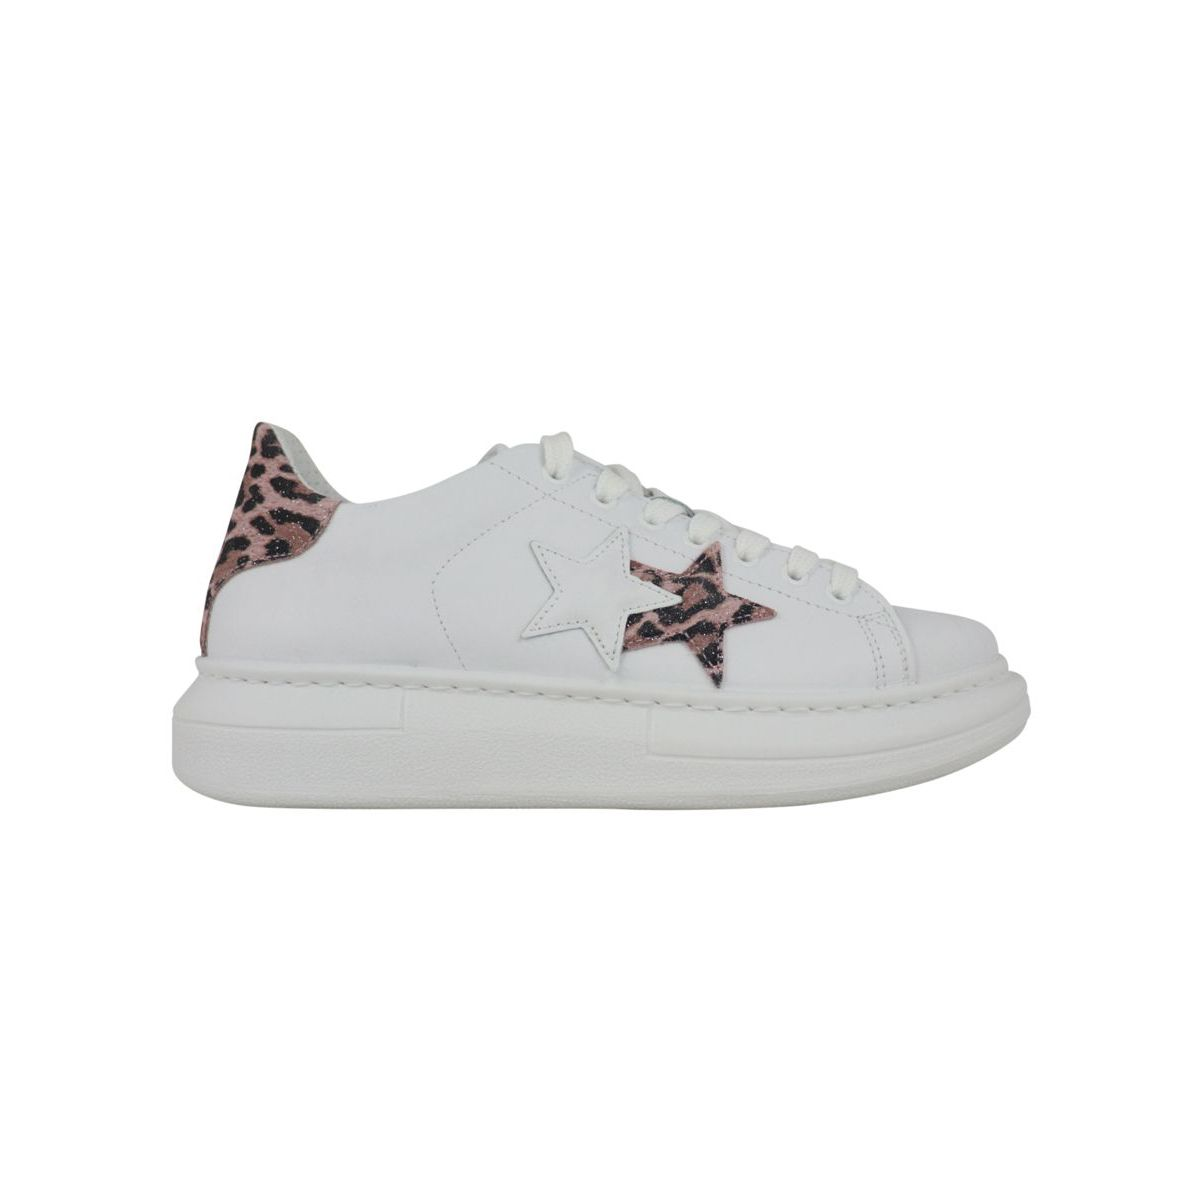 Sneakers with side logo and spotted detail on the back White / speckled 2Star